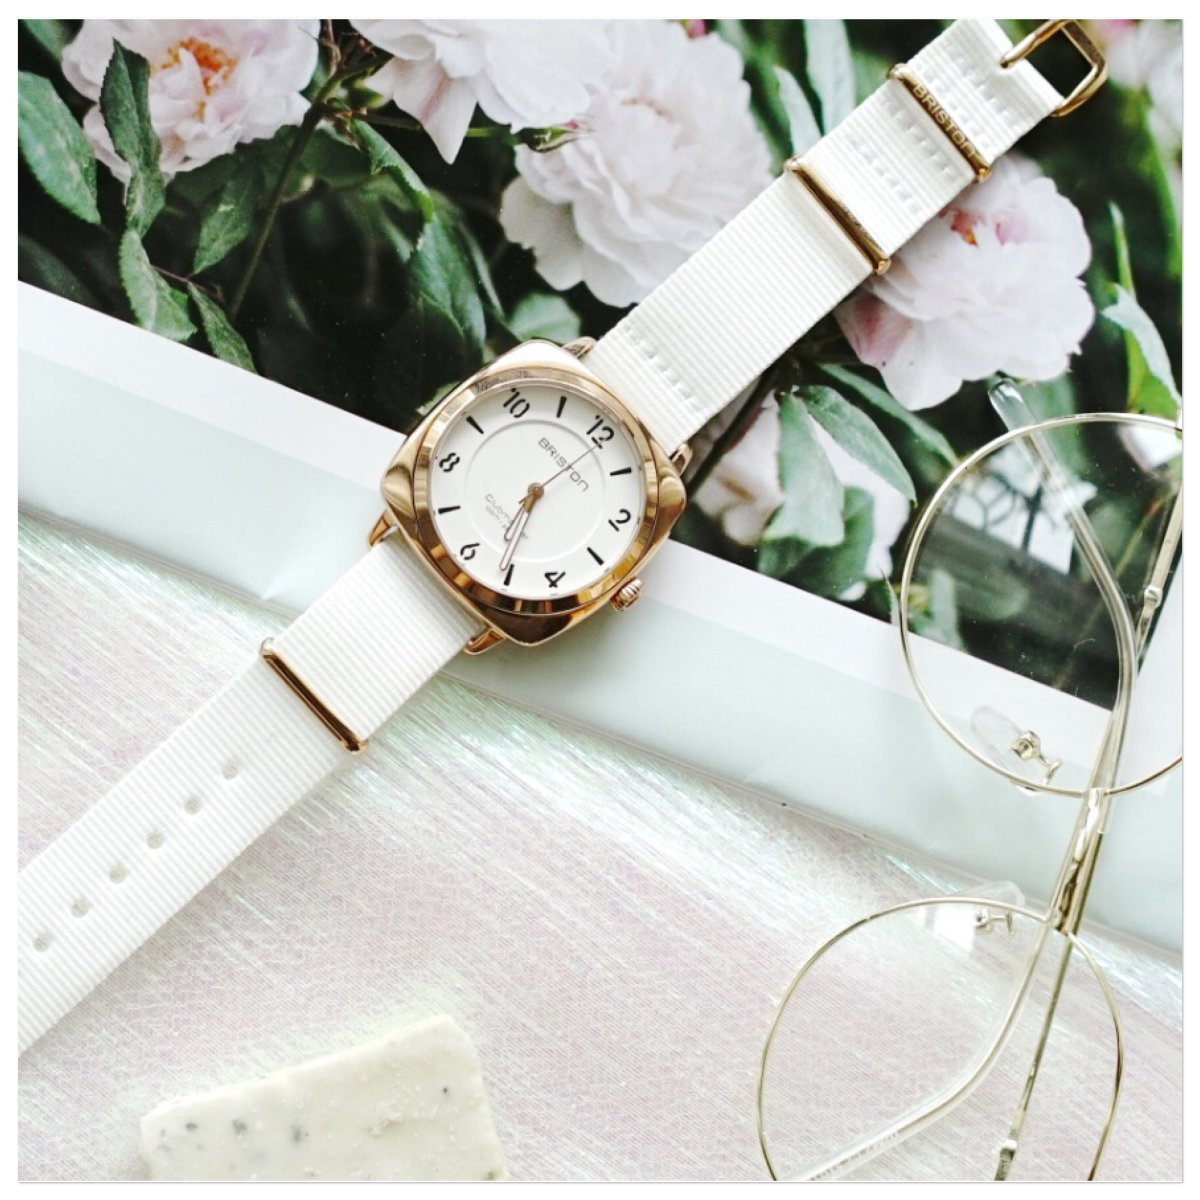 Elegant and timeless watch  #bristonwatches #mybriston #briston #watches #clubmaster #chic #girlpower #fashion #rosegold #watchoftheday #watch  Discover this model : https://www.briston-watches.com/en/product/clubmaster-chic-steel-gold-17536-sprg-l-2-nt/ …pic.twitter.com/M9QyRZskki